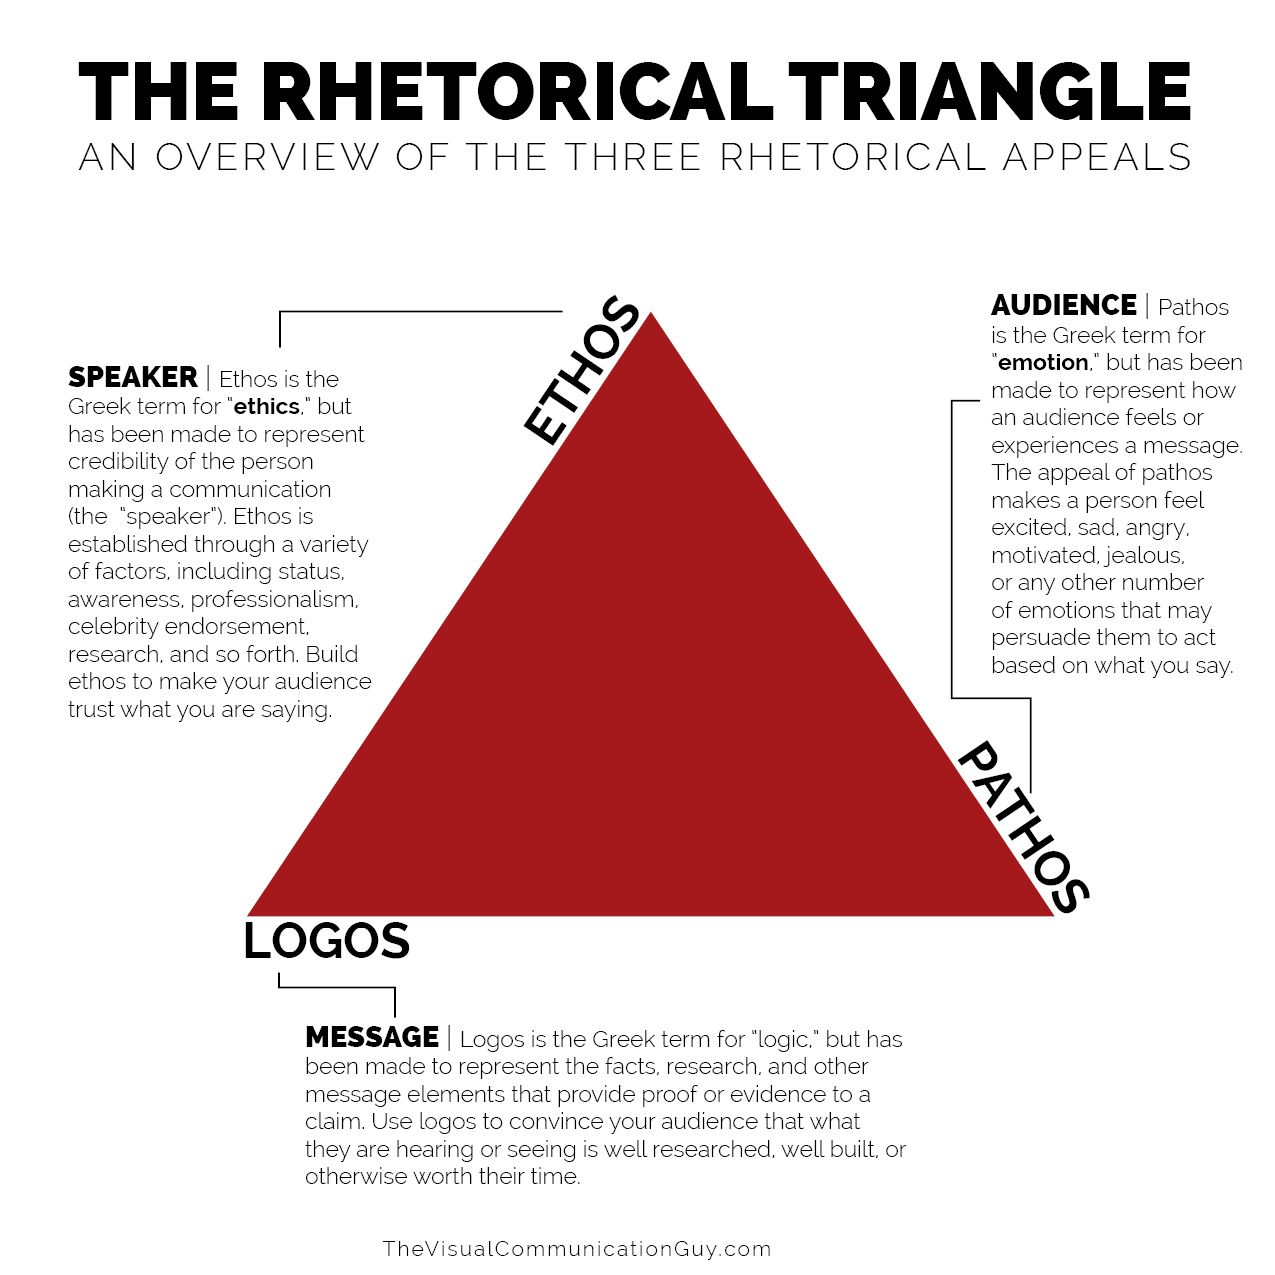 The Rhetorical Triangle Is A Common Reference To The Three